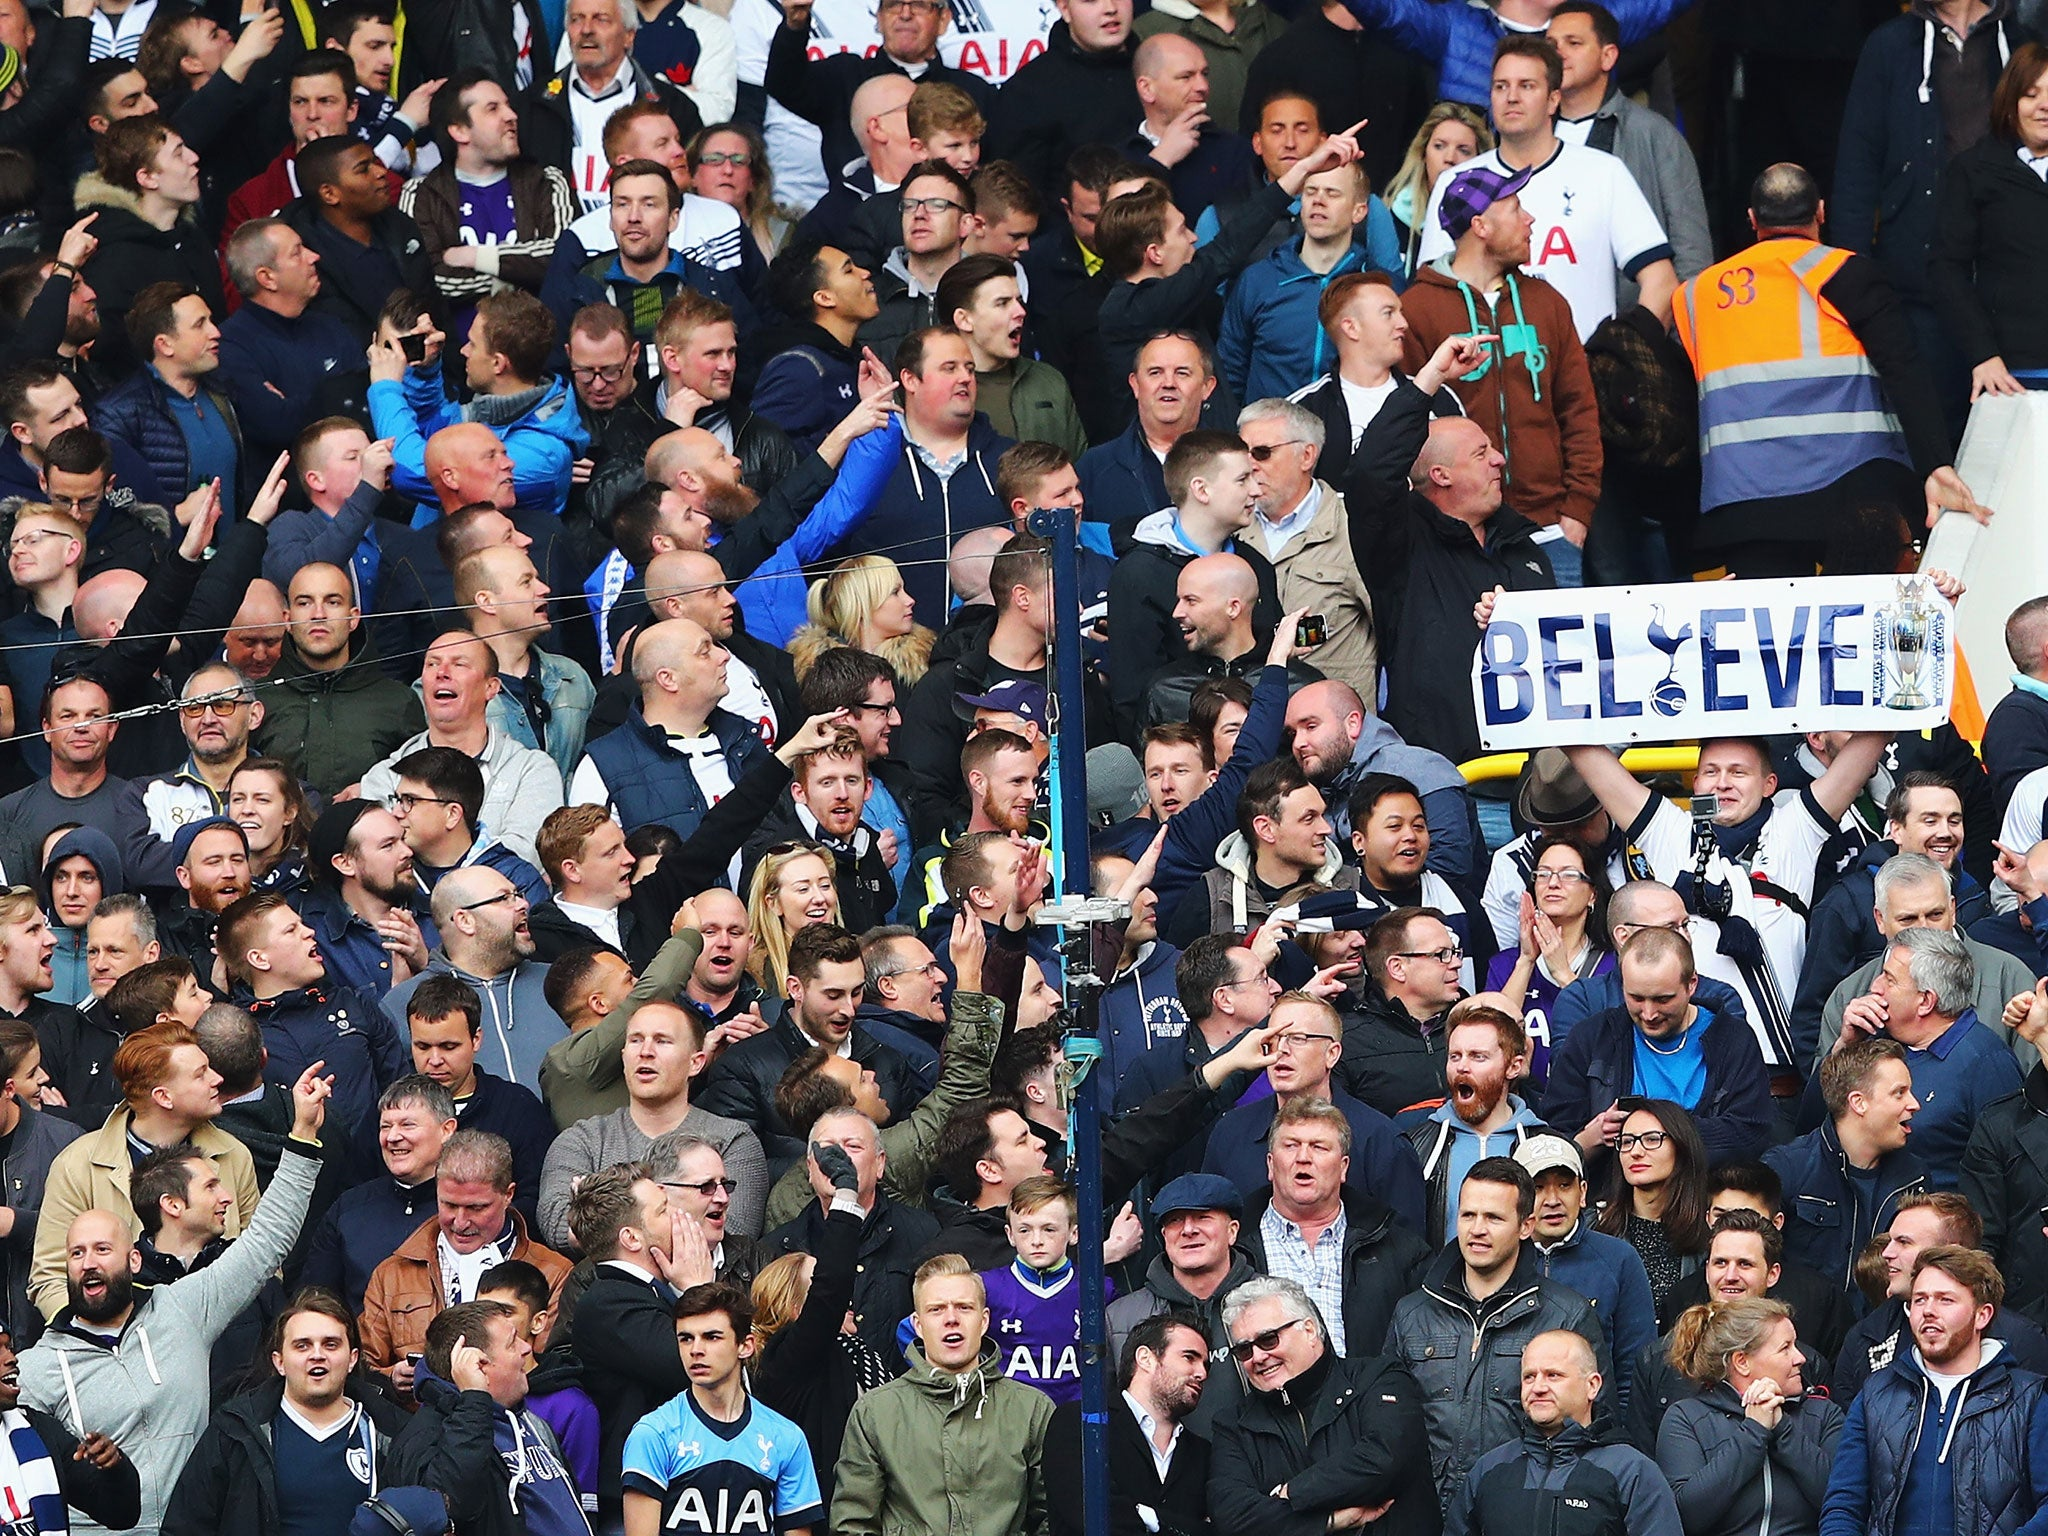 Tottenham supporters still believe they can win the title